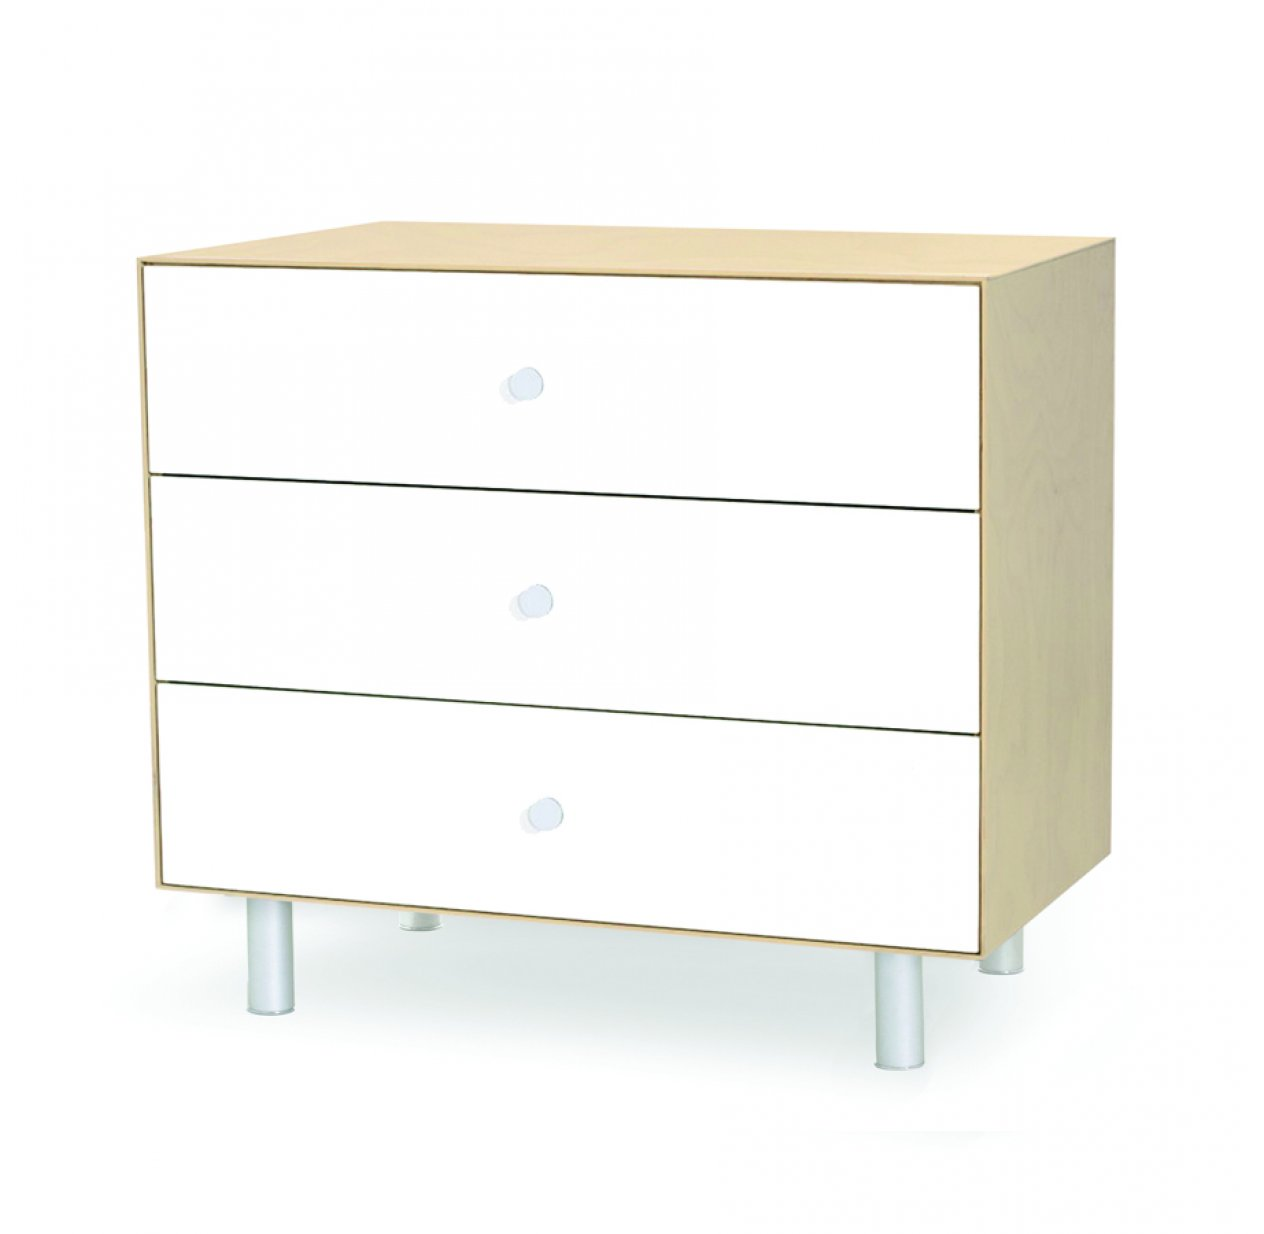 Commode Merlin Classic 3 tiroirs - Blanc/Bouleau